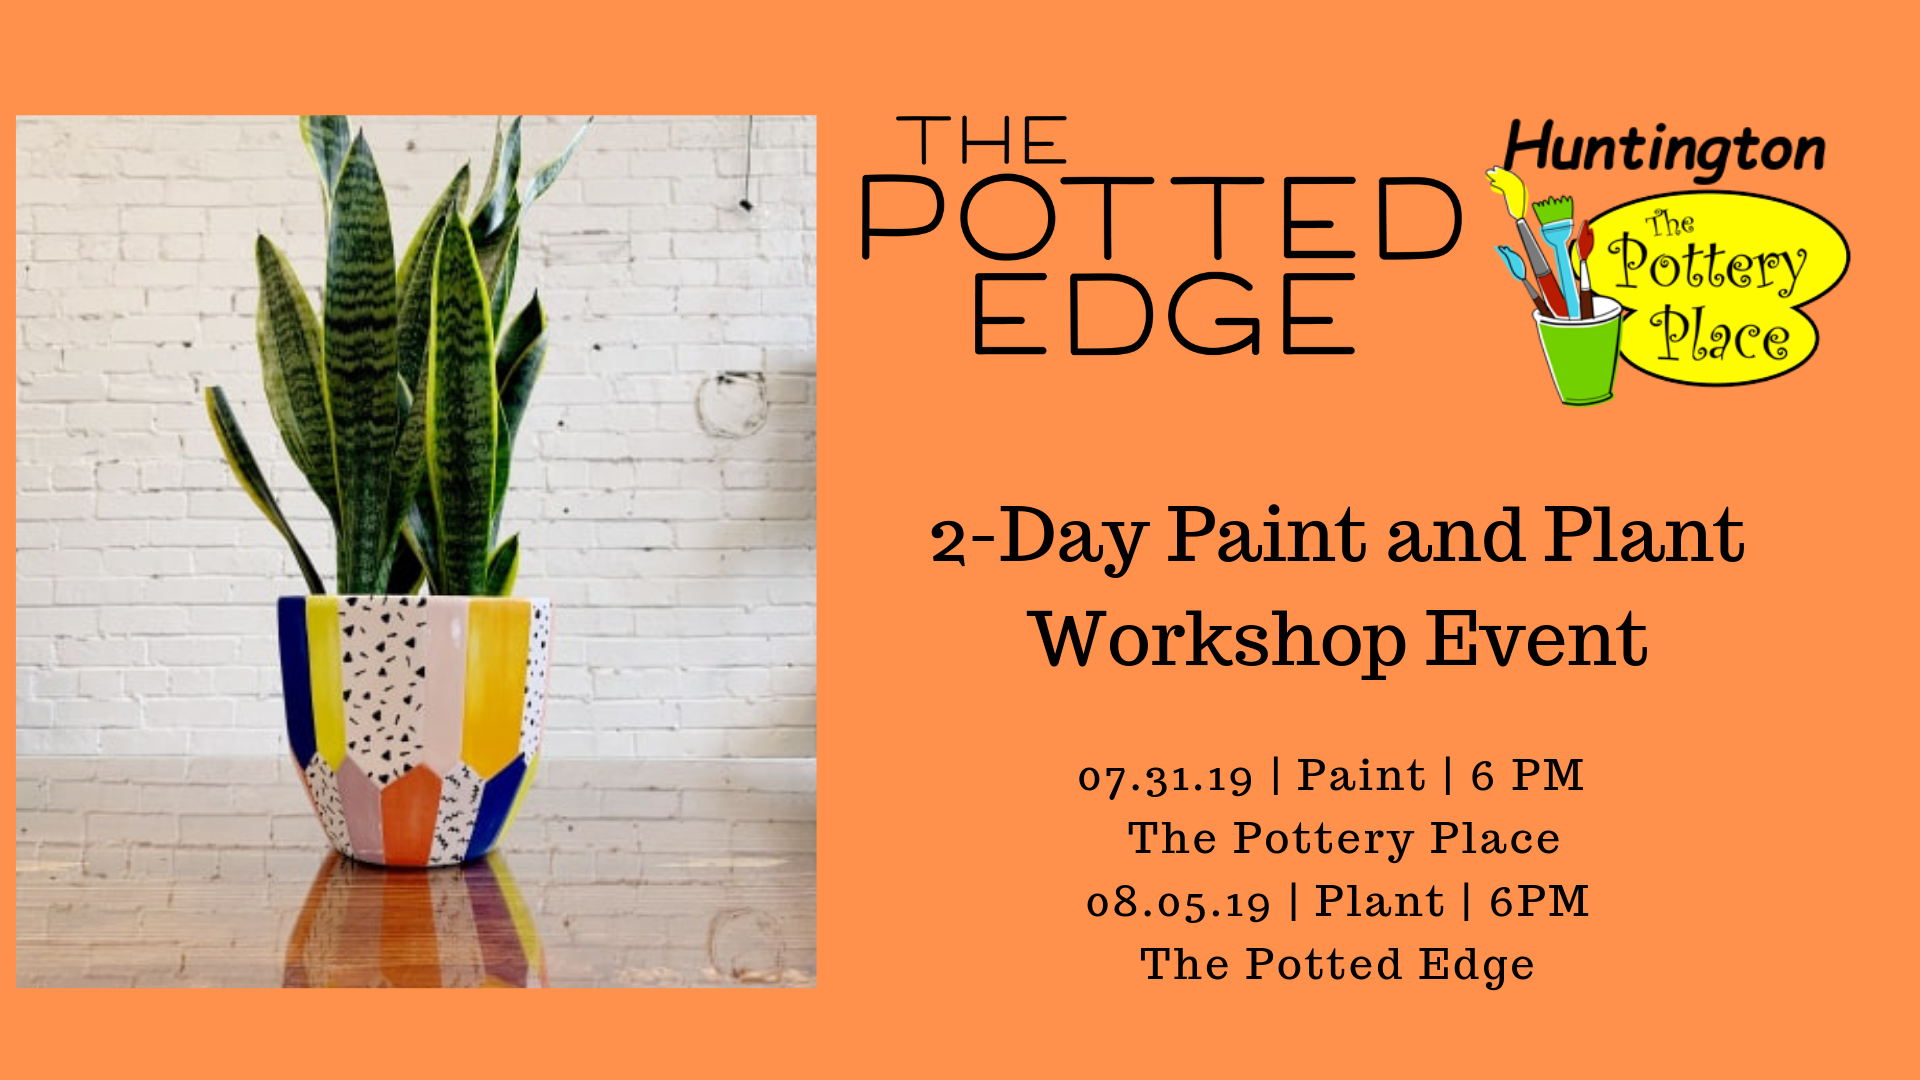 2-Day Paint and Plant Workshop Event